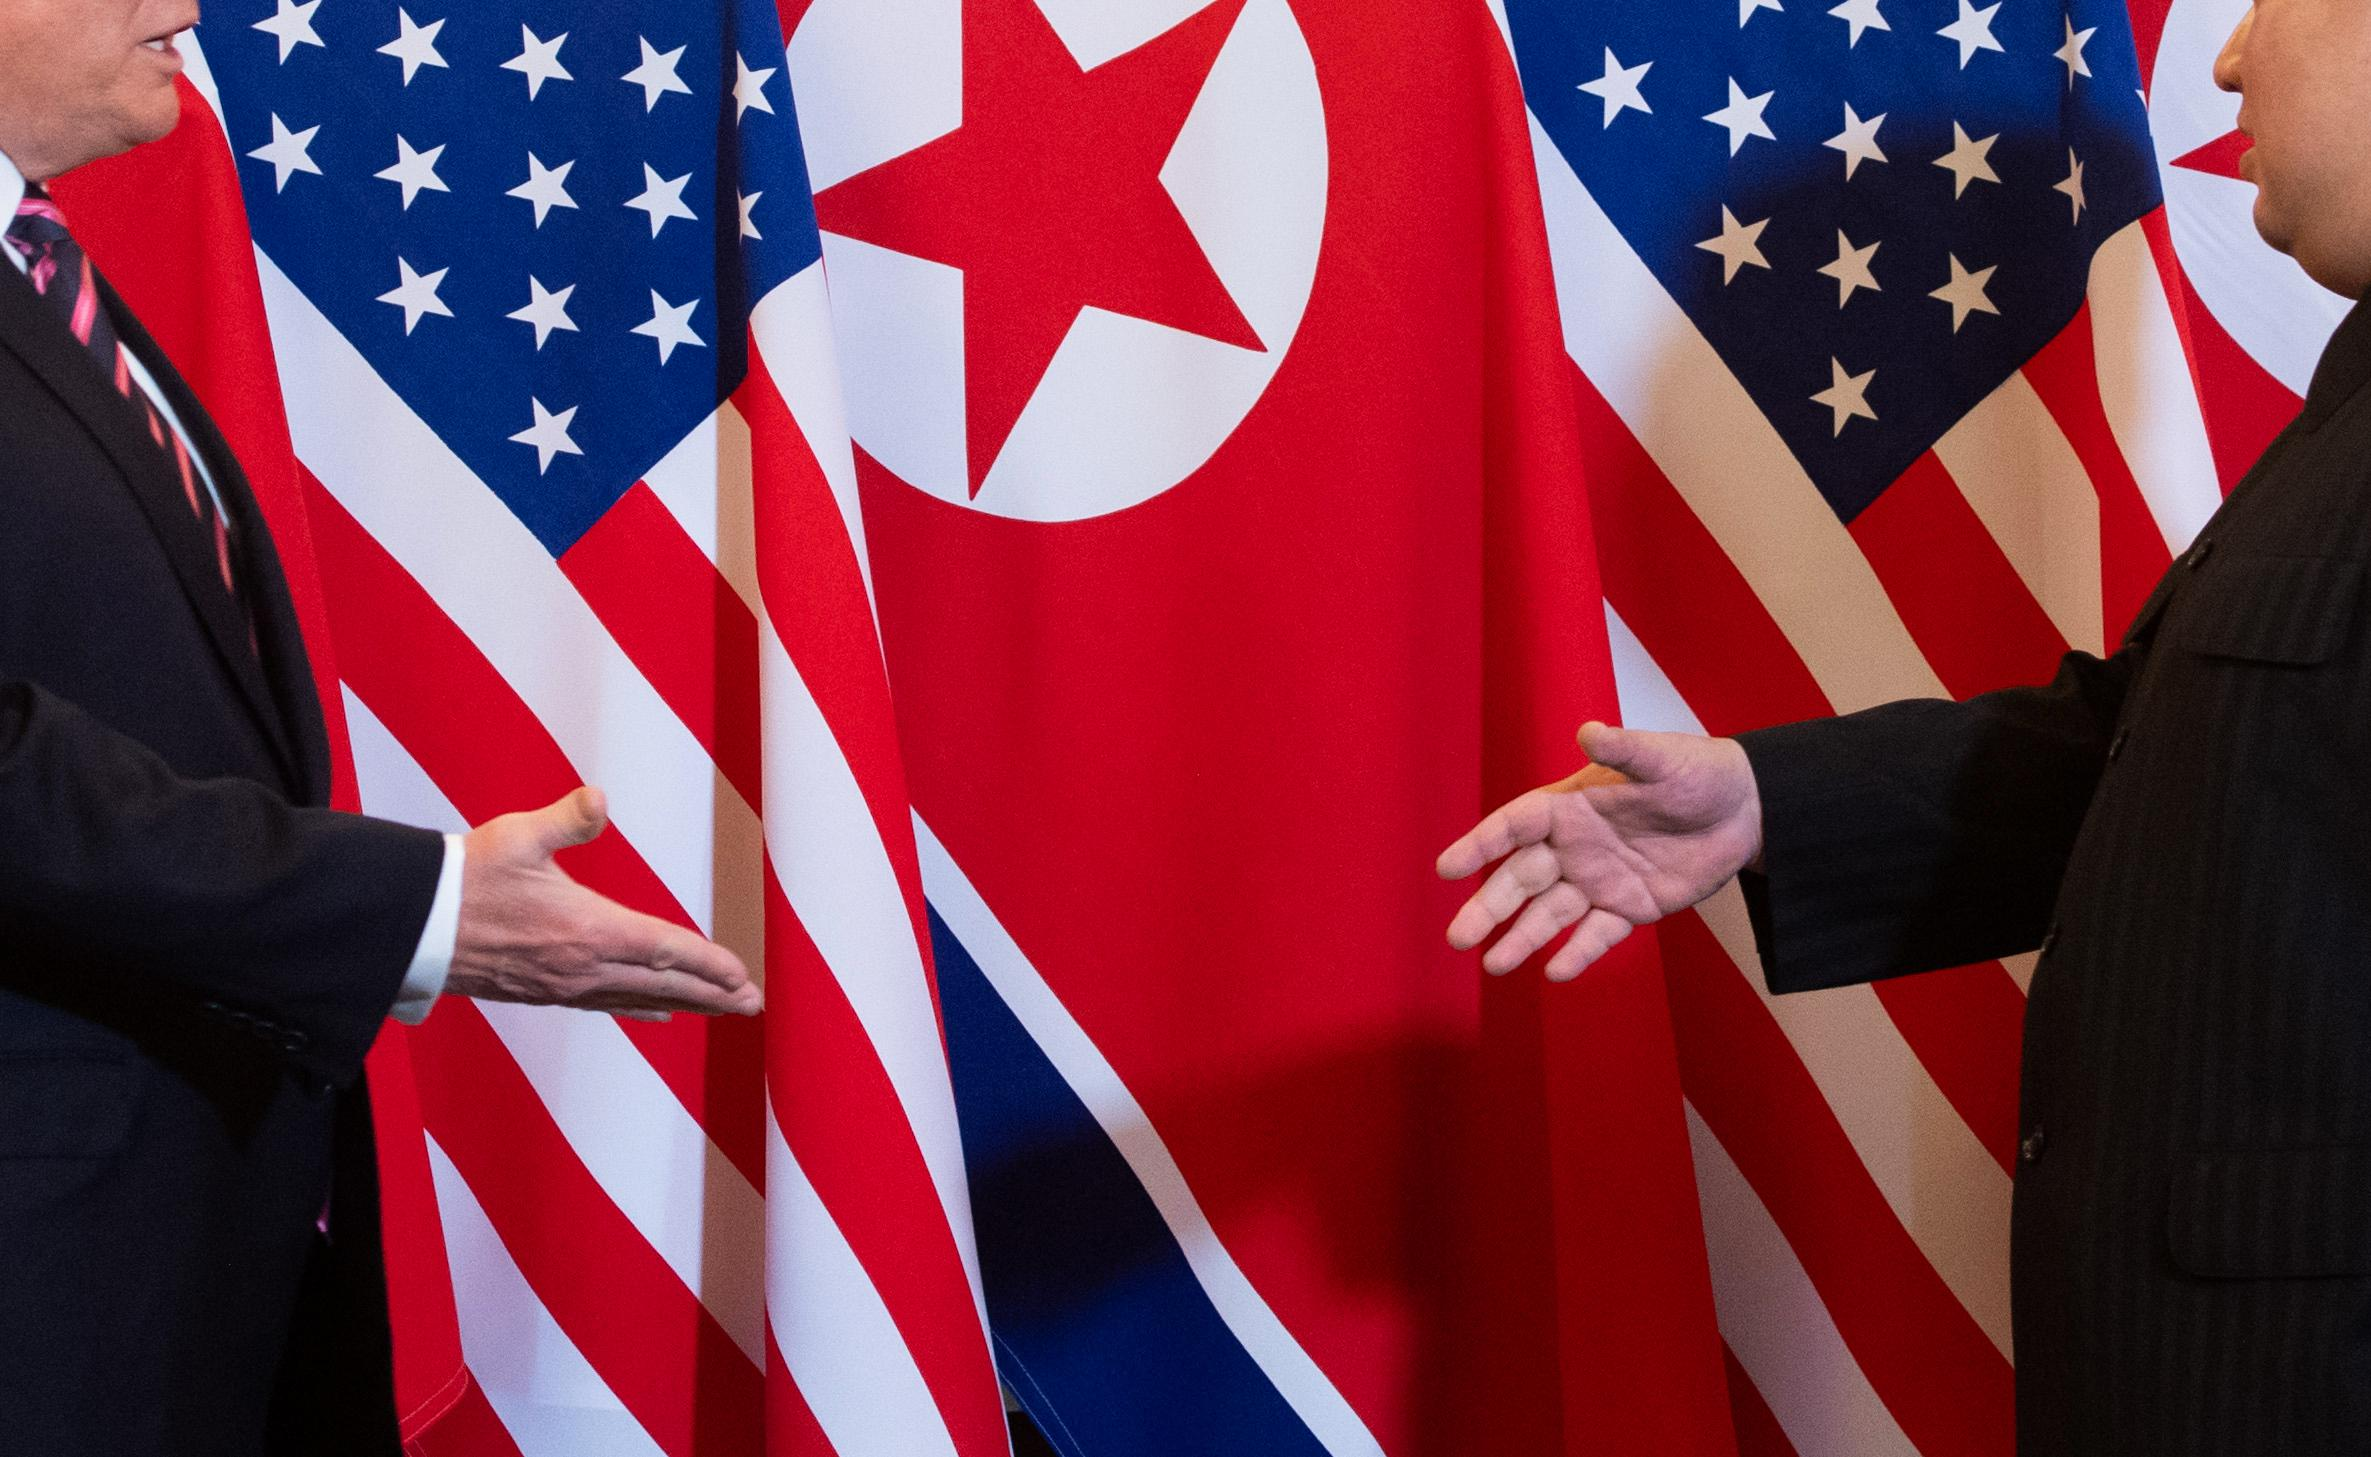 President Trump and Kim Jong-un bringing it in during the summit in Hanoi on Feb. 27, 2019.